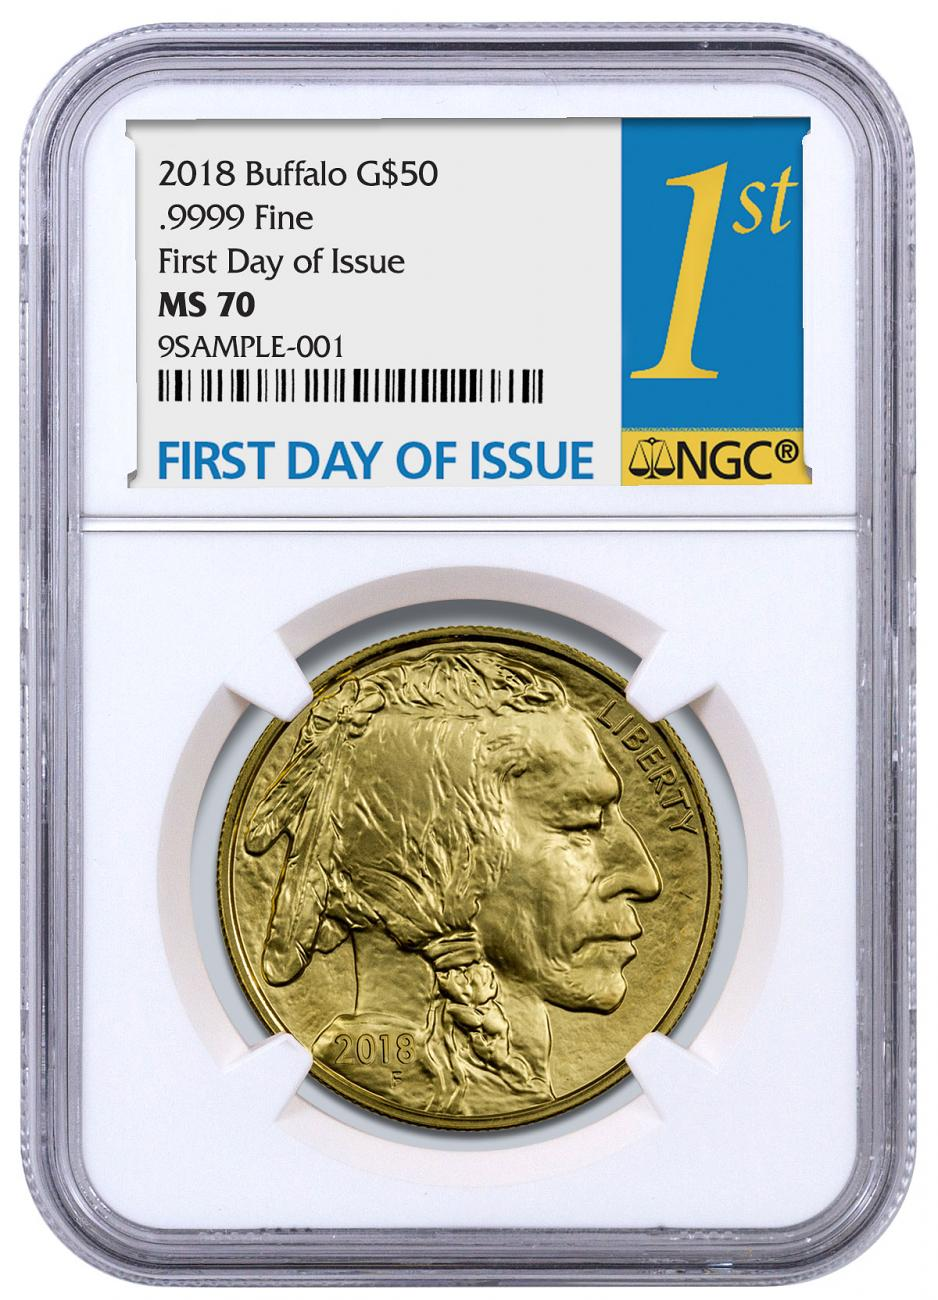 2018 1 oz Gold Buffalo $50 Coin NGC MS70 FDI